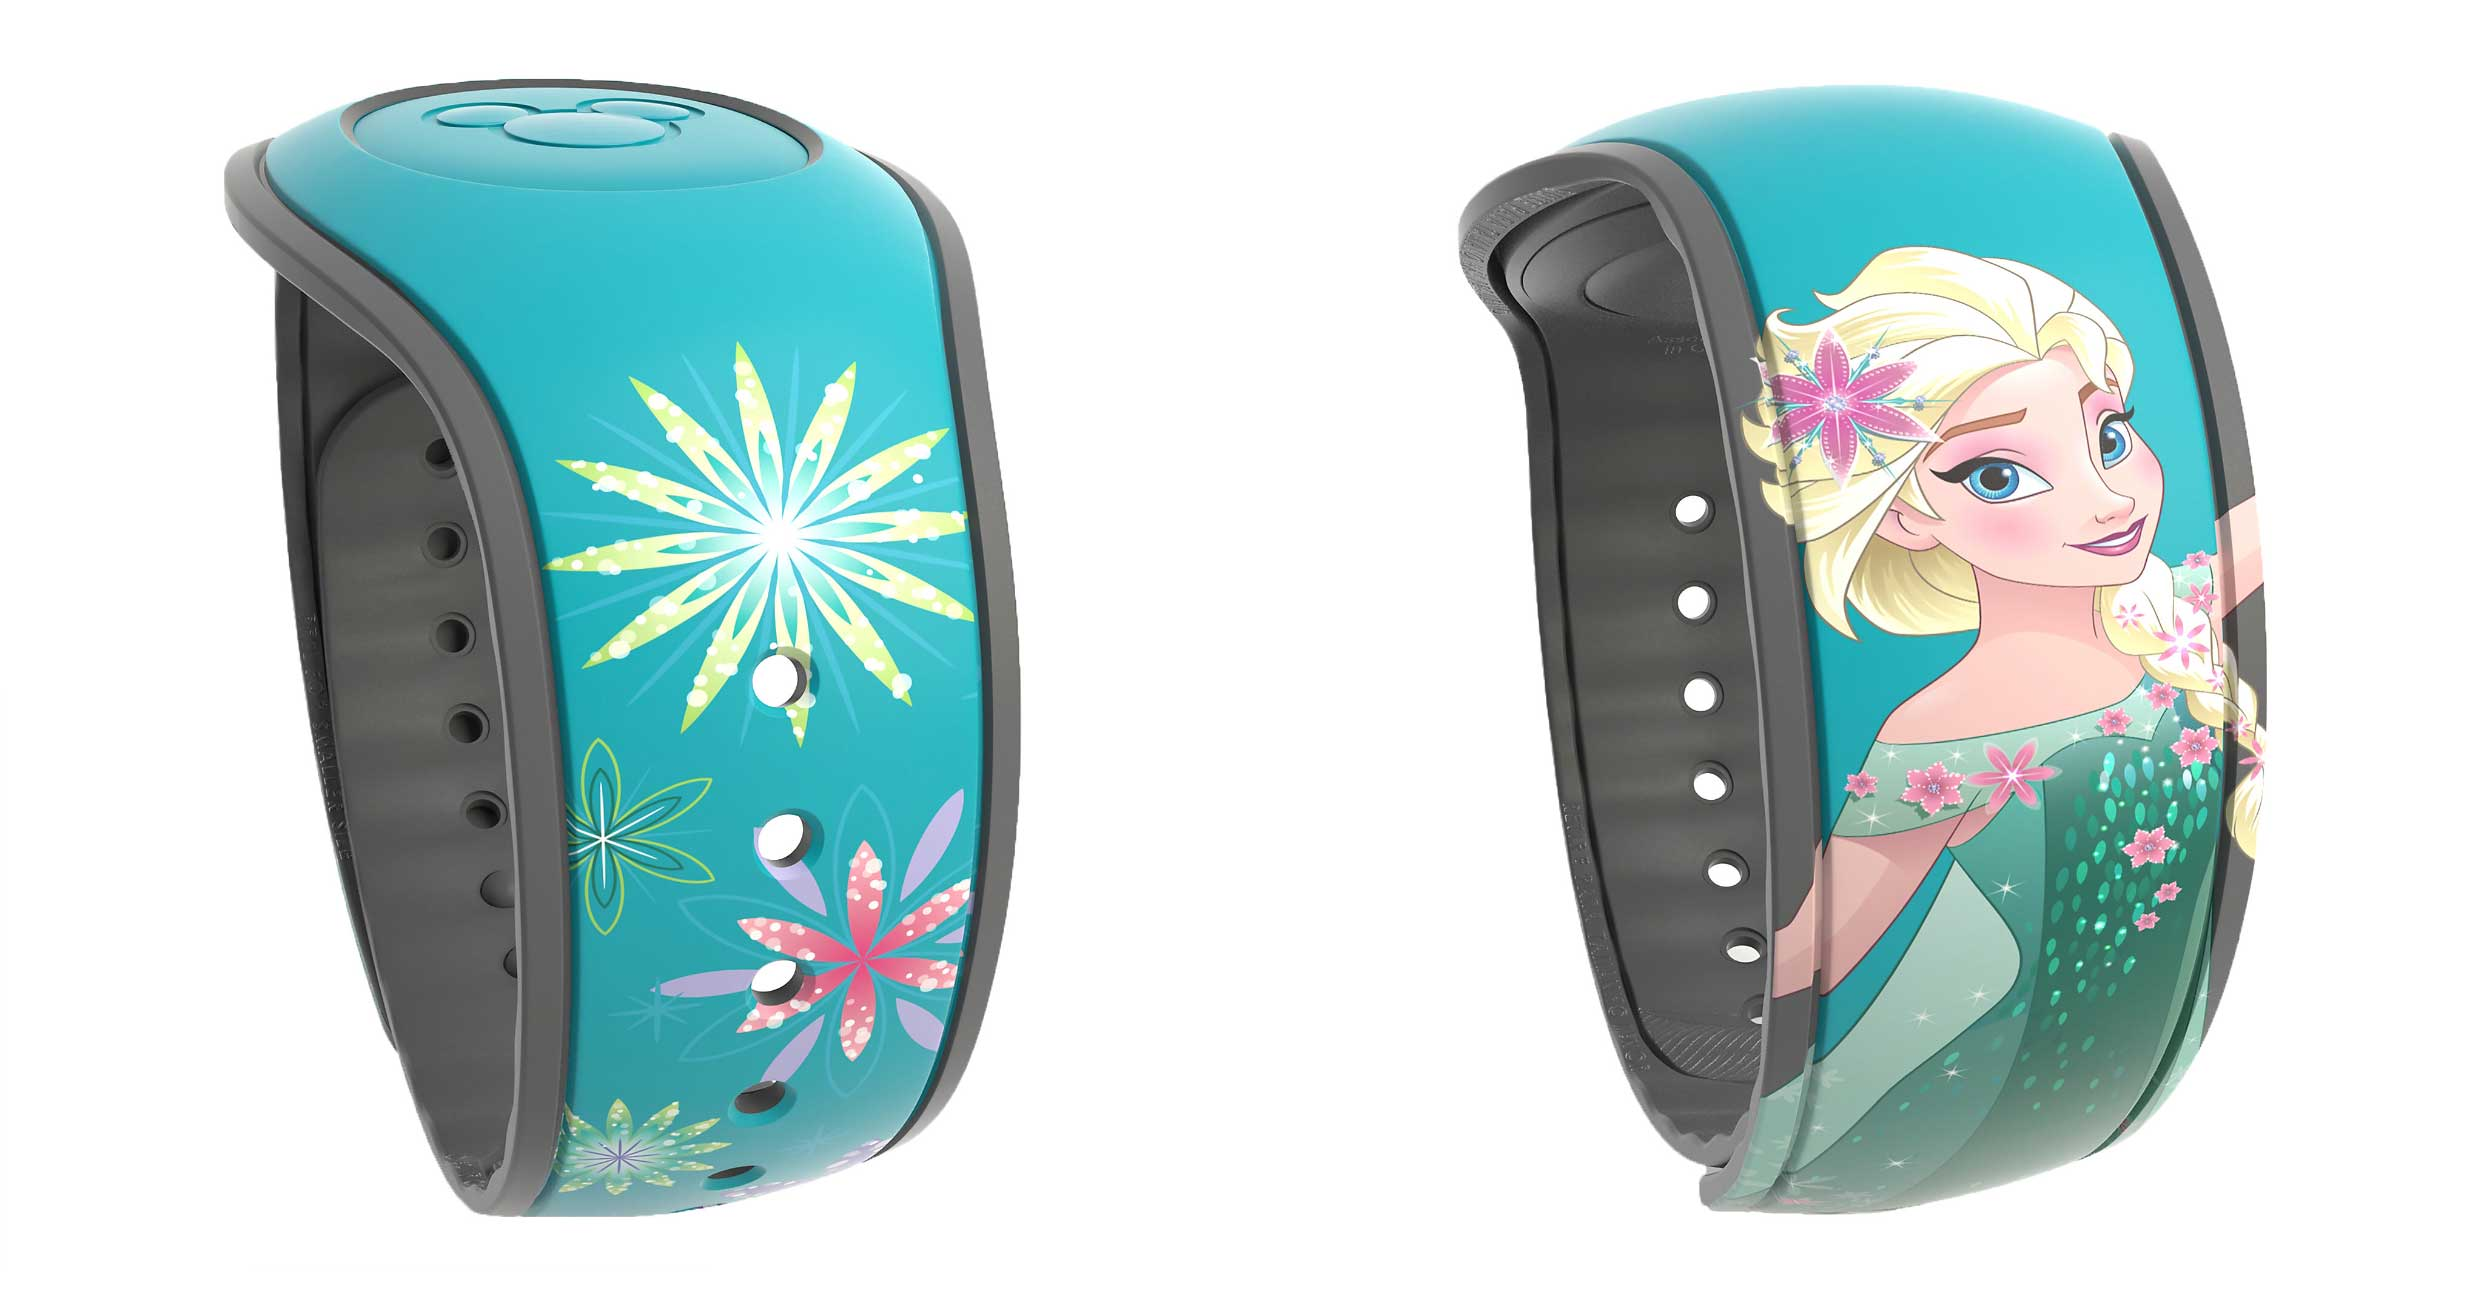 Black and Teal MagicBand 2